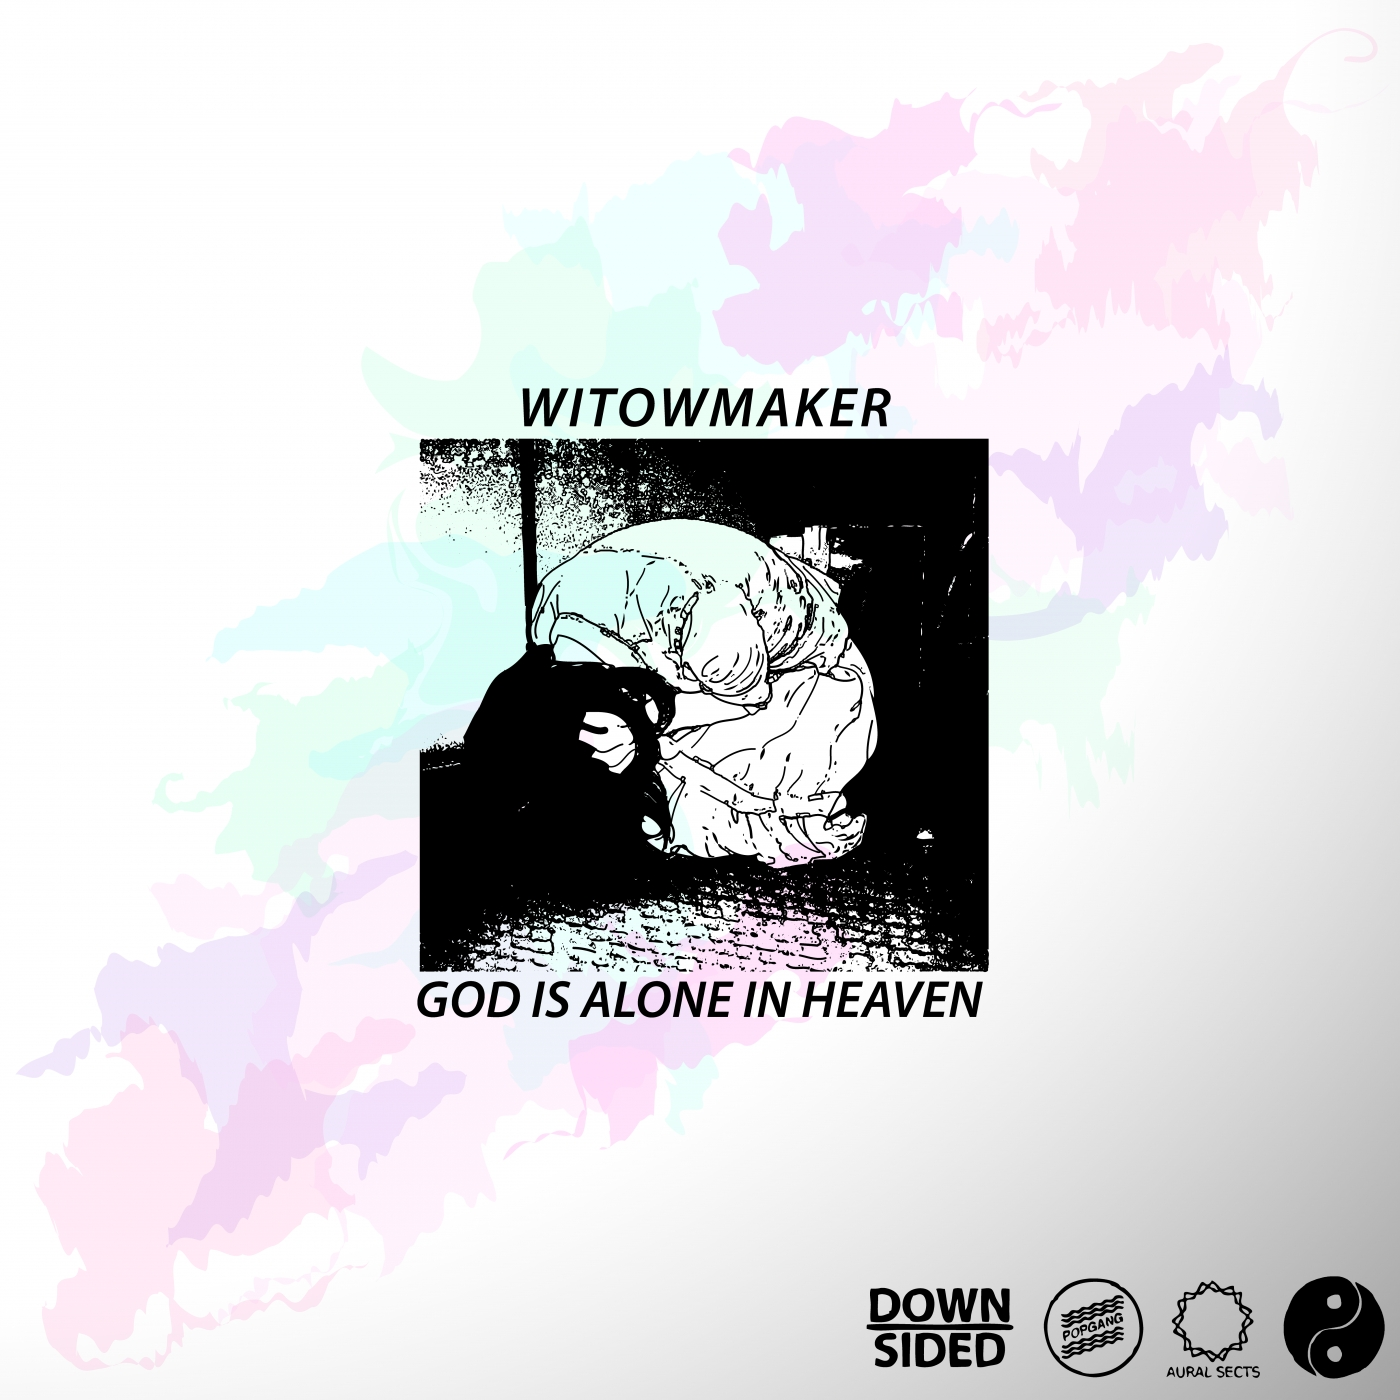 WITOWMAKER - GOD IS ALONE IN HEAVEN